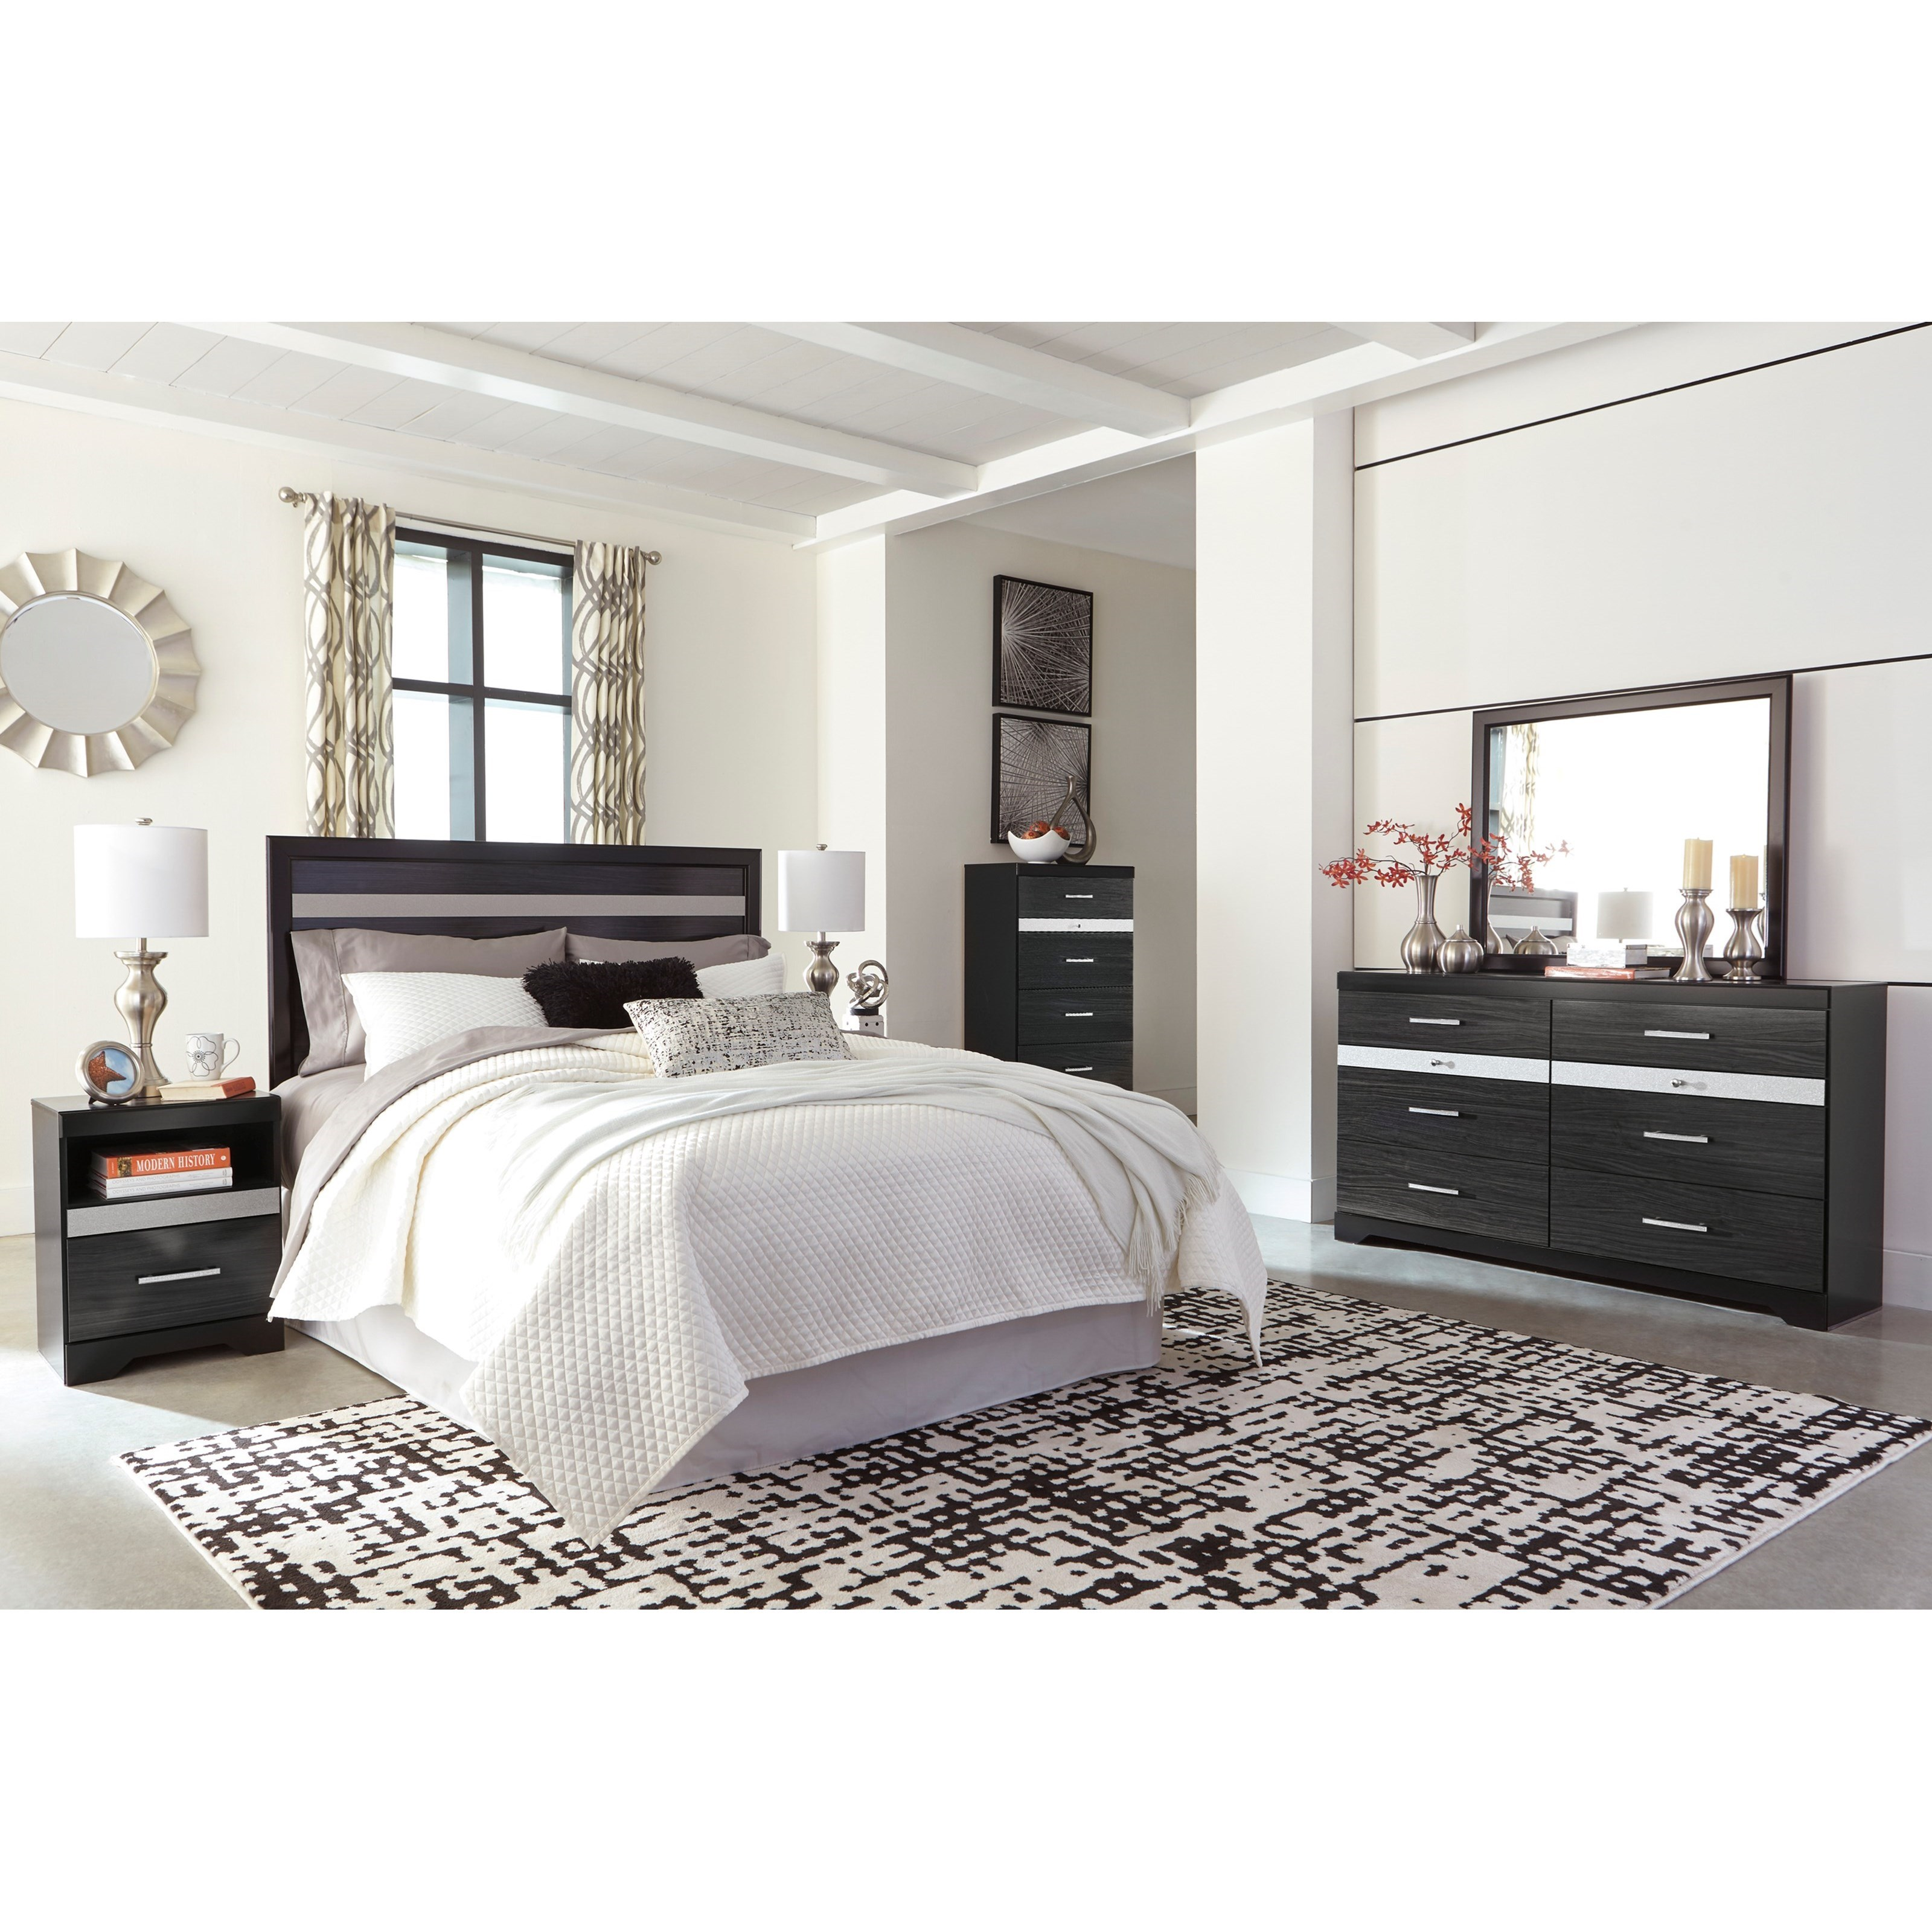 Ashley Furniture Superstore: Signature Design By Ashley Starberry Queen/Full Bedroom